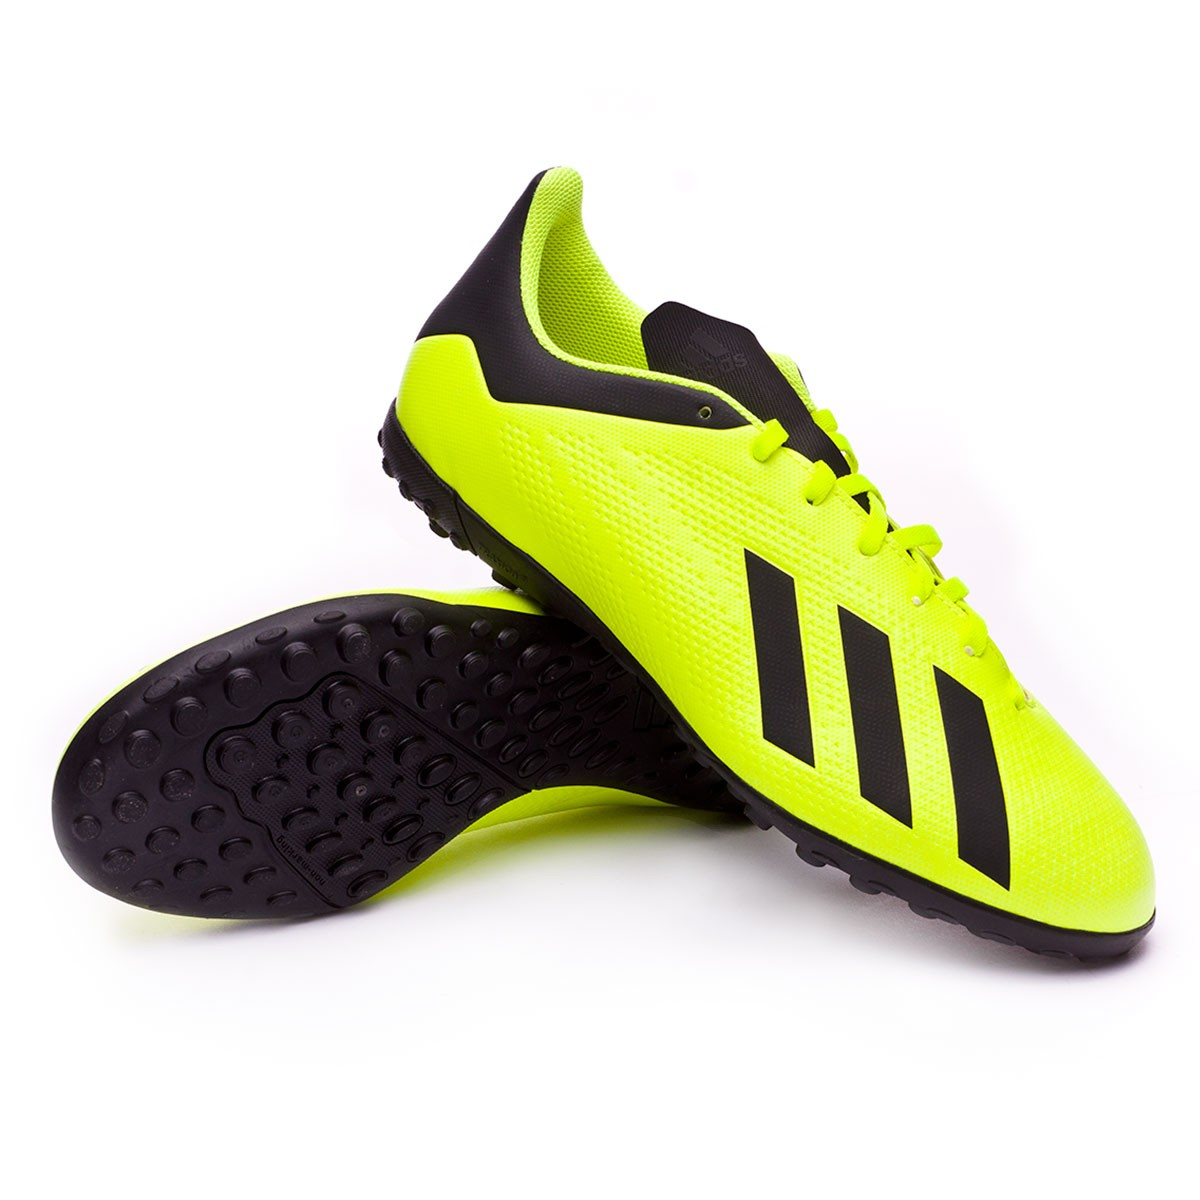 b7e95518143d1c Football Boot adidas X Tango 18.4 Turf Solar yellow-Core black-White ...